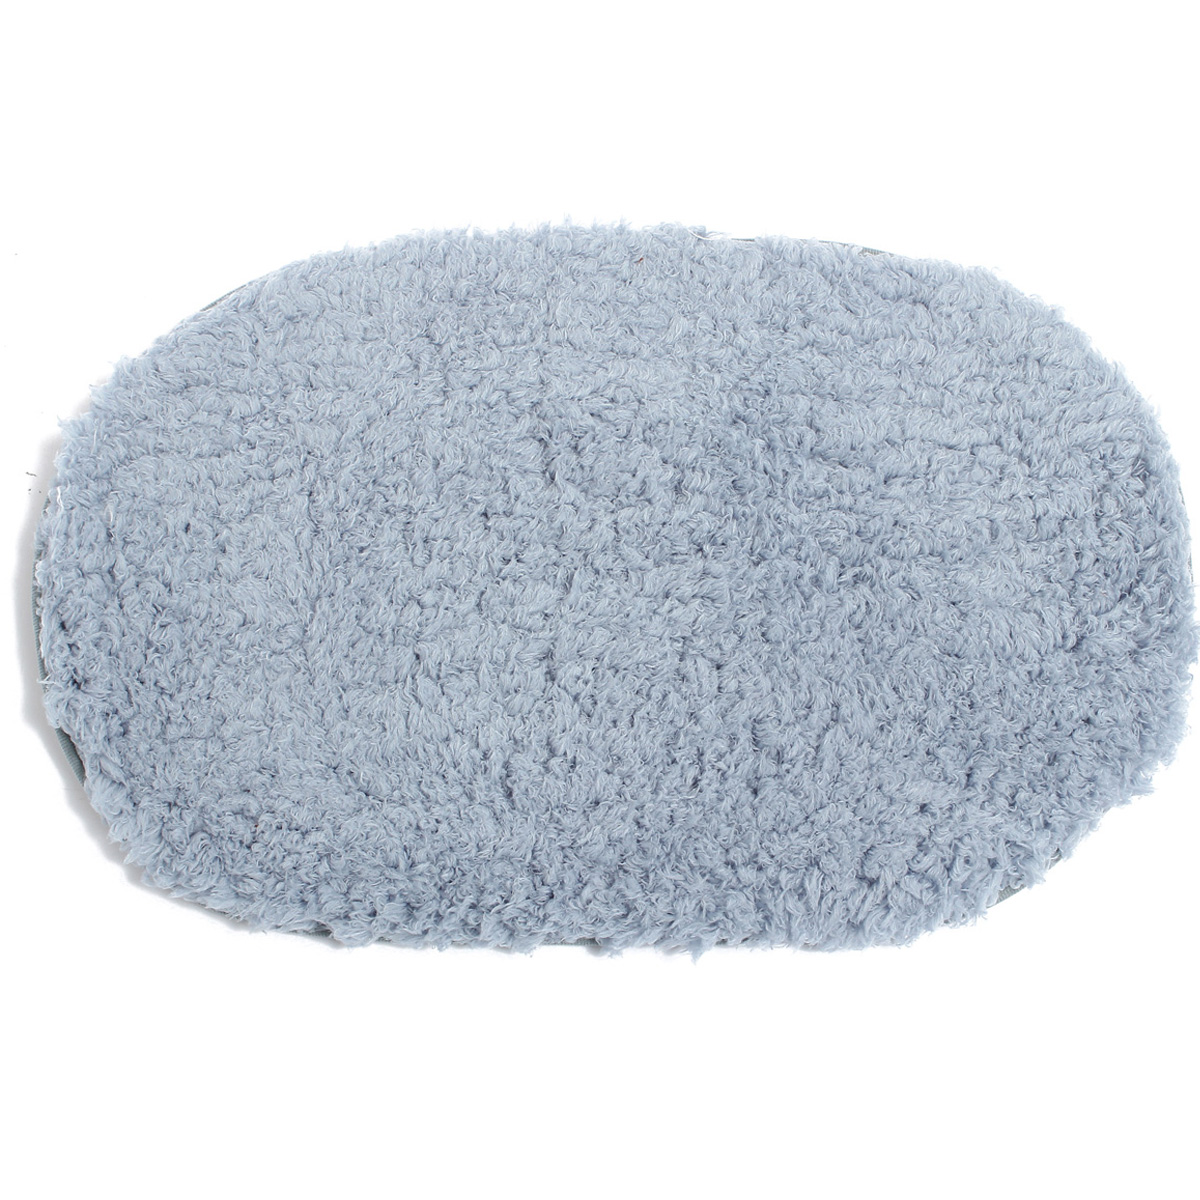 ovale tapis shaggy peluche longues m ches antid rapant pr chambre salle de bain ebay. Black Bedroom Furniture Sets. Home Design Ideas